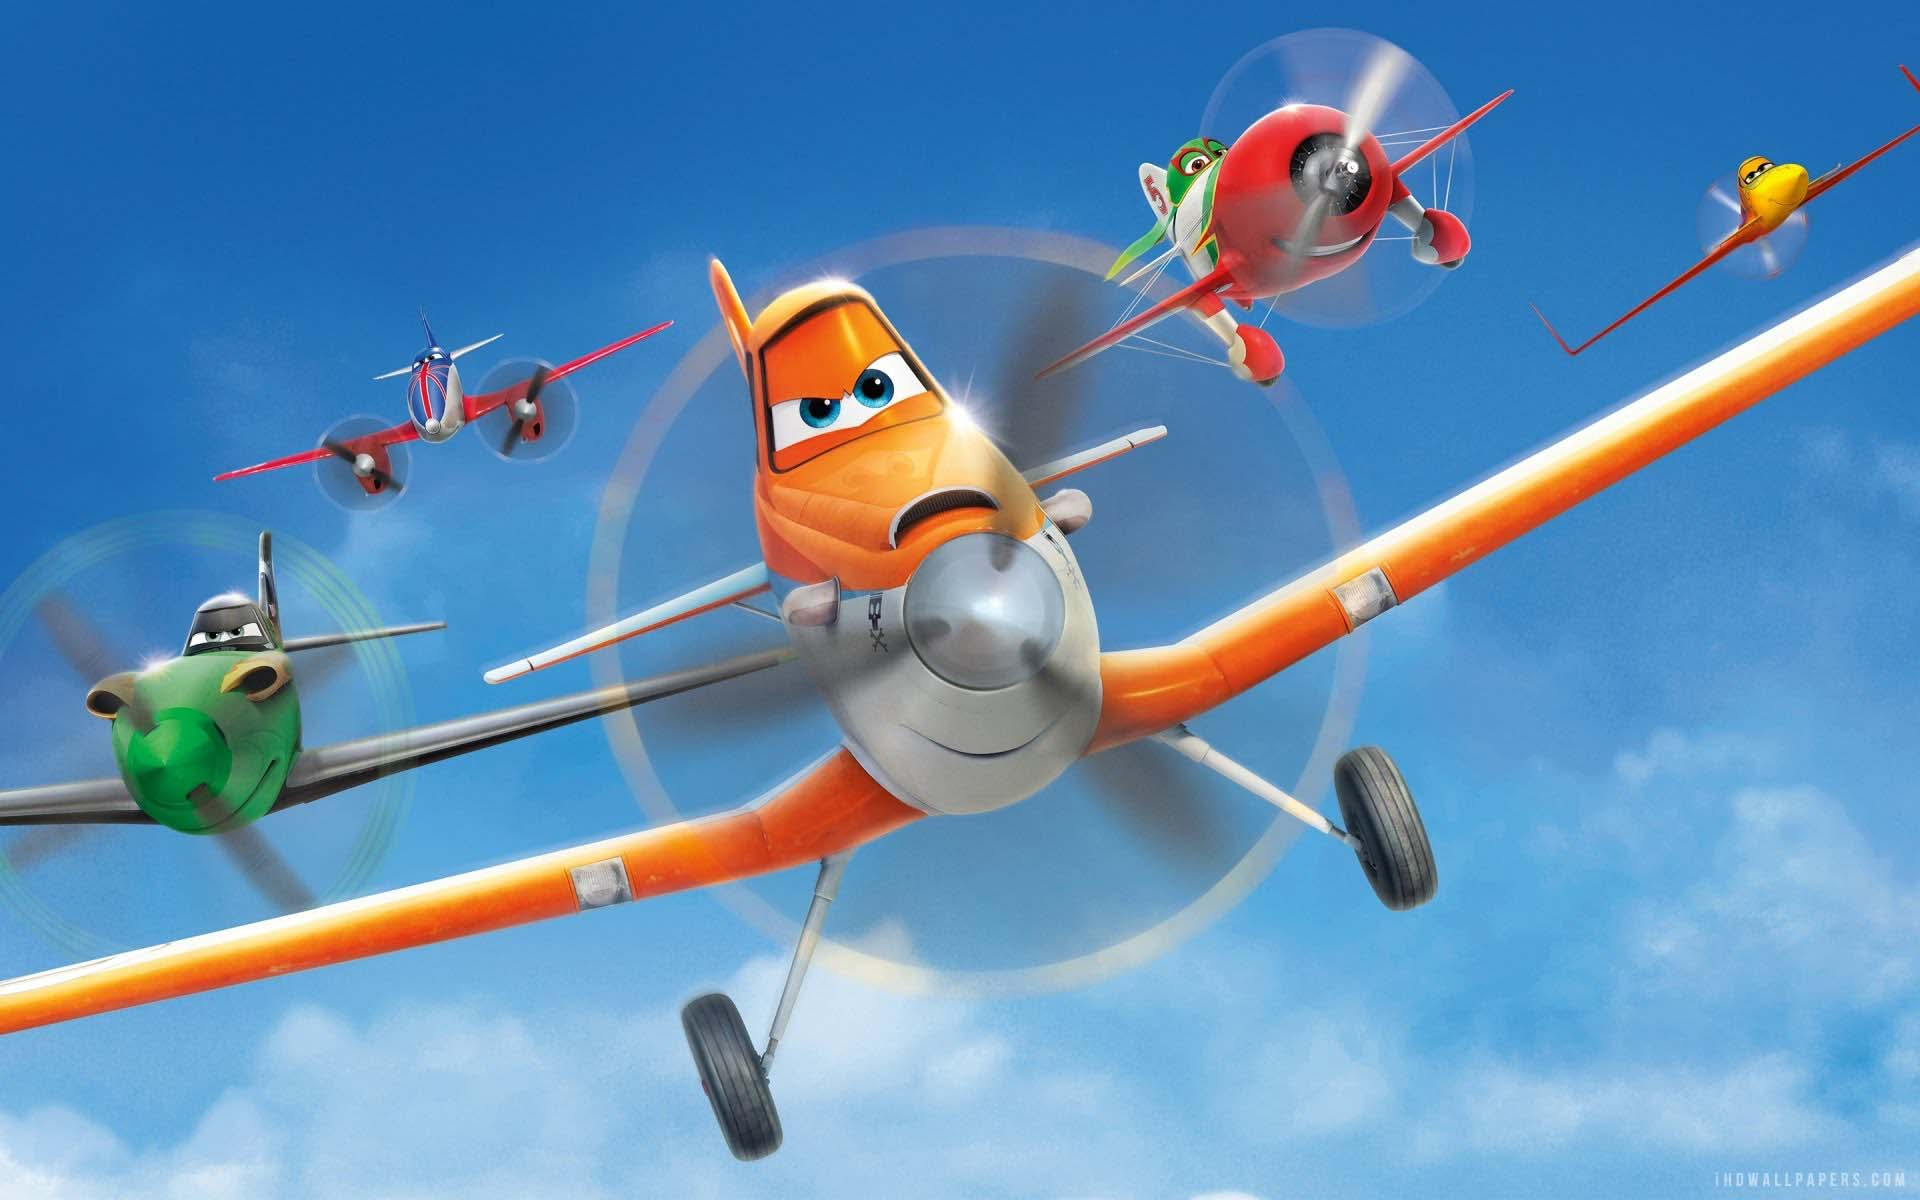 Planes - Disneytoon Studios